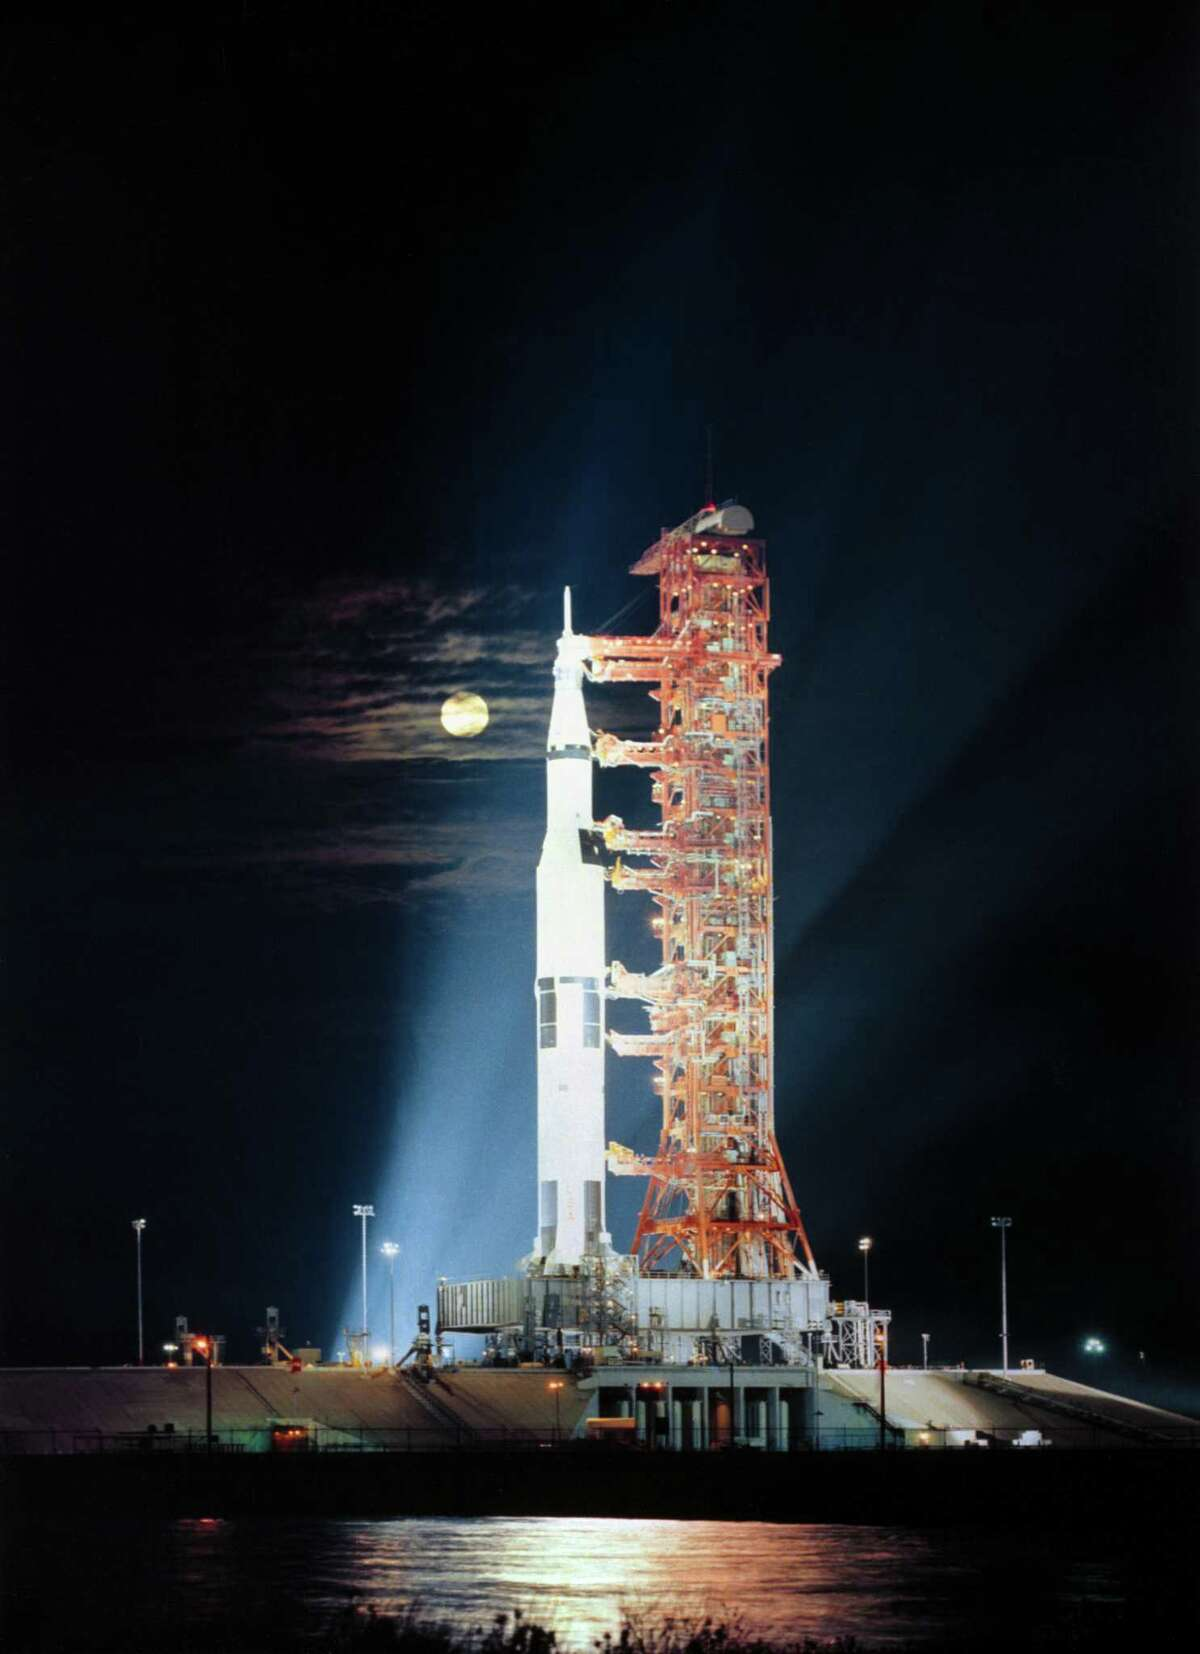 Searchlights illuminate the nighttime scene in November 1972 at the Kennedy Space Center in Florida, showing the Apollo 17 spacecraft during prelaunch preparations. Apollo 17, the final lunar landing mission in NASA's Apollo program, was the first nighttime liftoff of the huge Saturn V launch vehicle. Apollo 17 launched Dec. 7, 1972 with astronaut Gene Cernan, commander; Ronald Evans, command module pilot; and scientist-astronaut Harrison H. Schmitt, lunar module pilot. The full moon can be seen in the background.